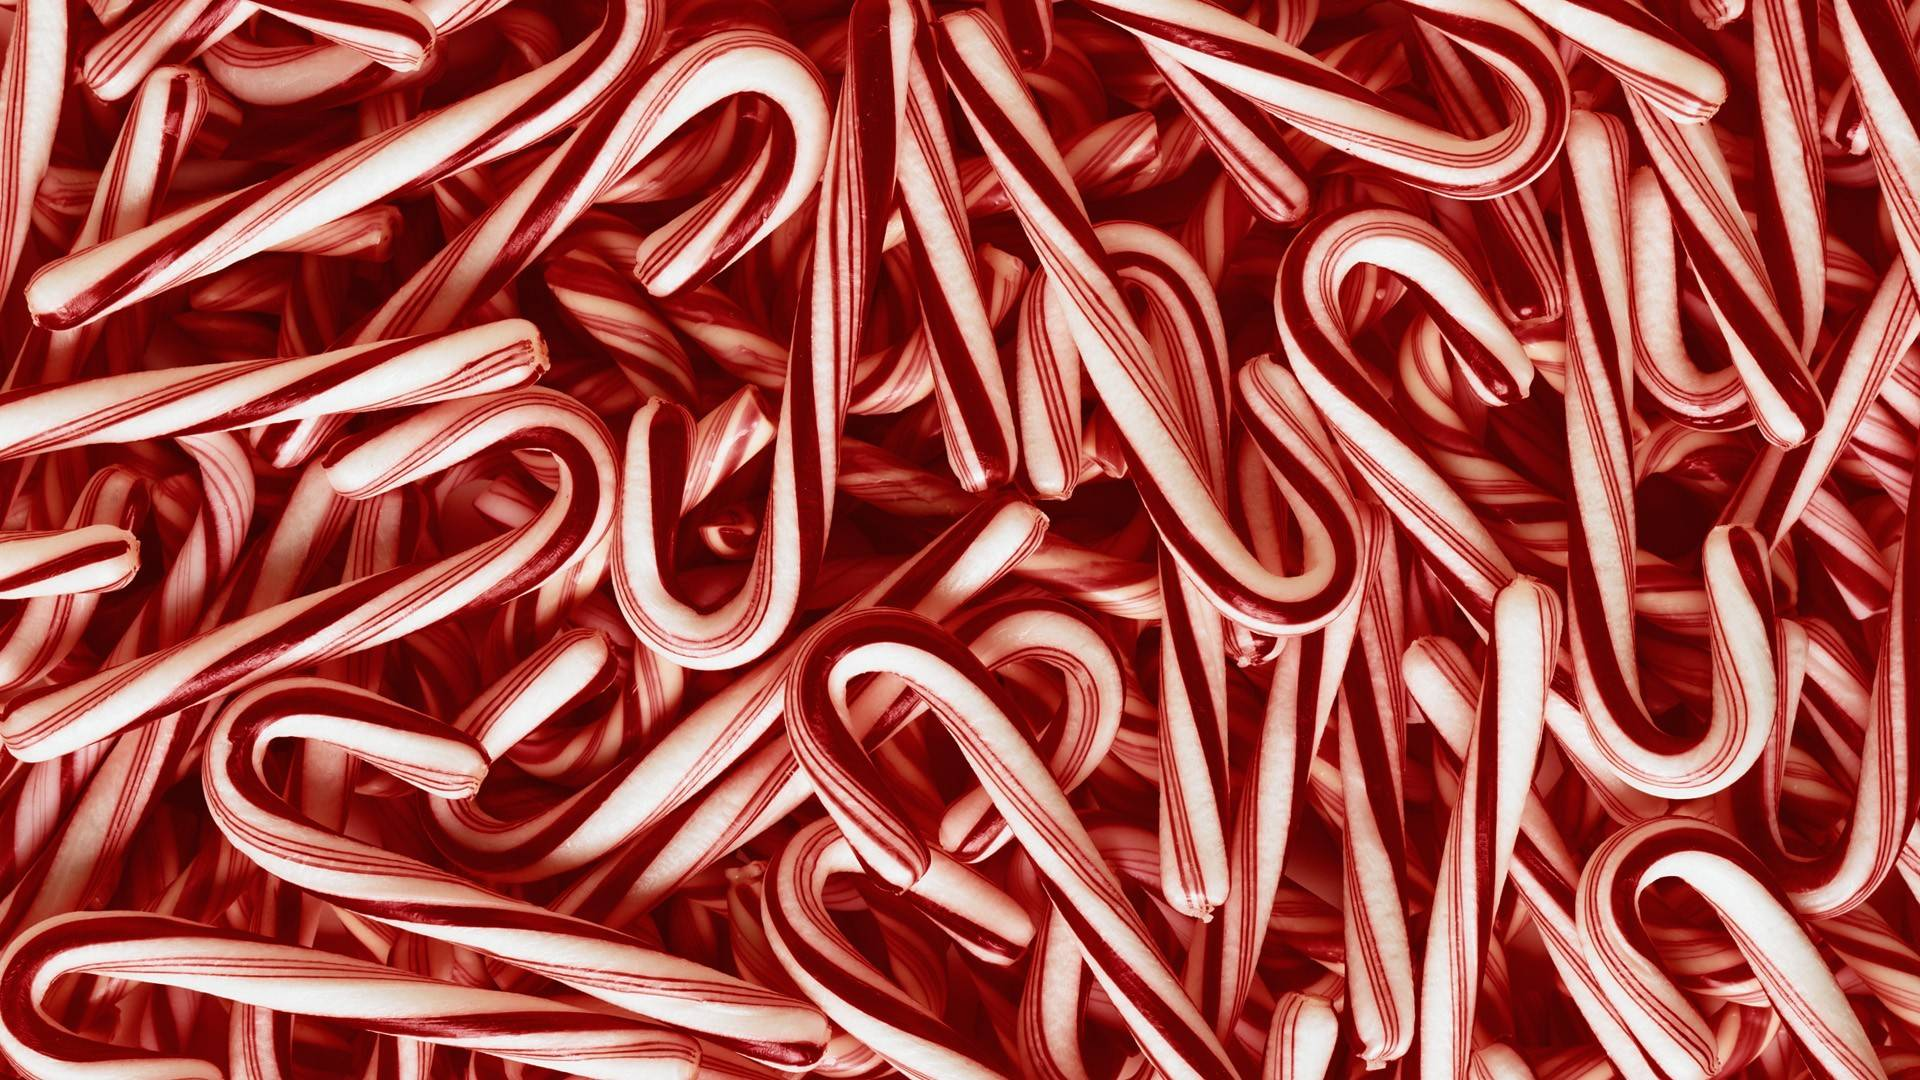 Candy Canes 19202151080 Wallpaper 1666040 1920x1080